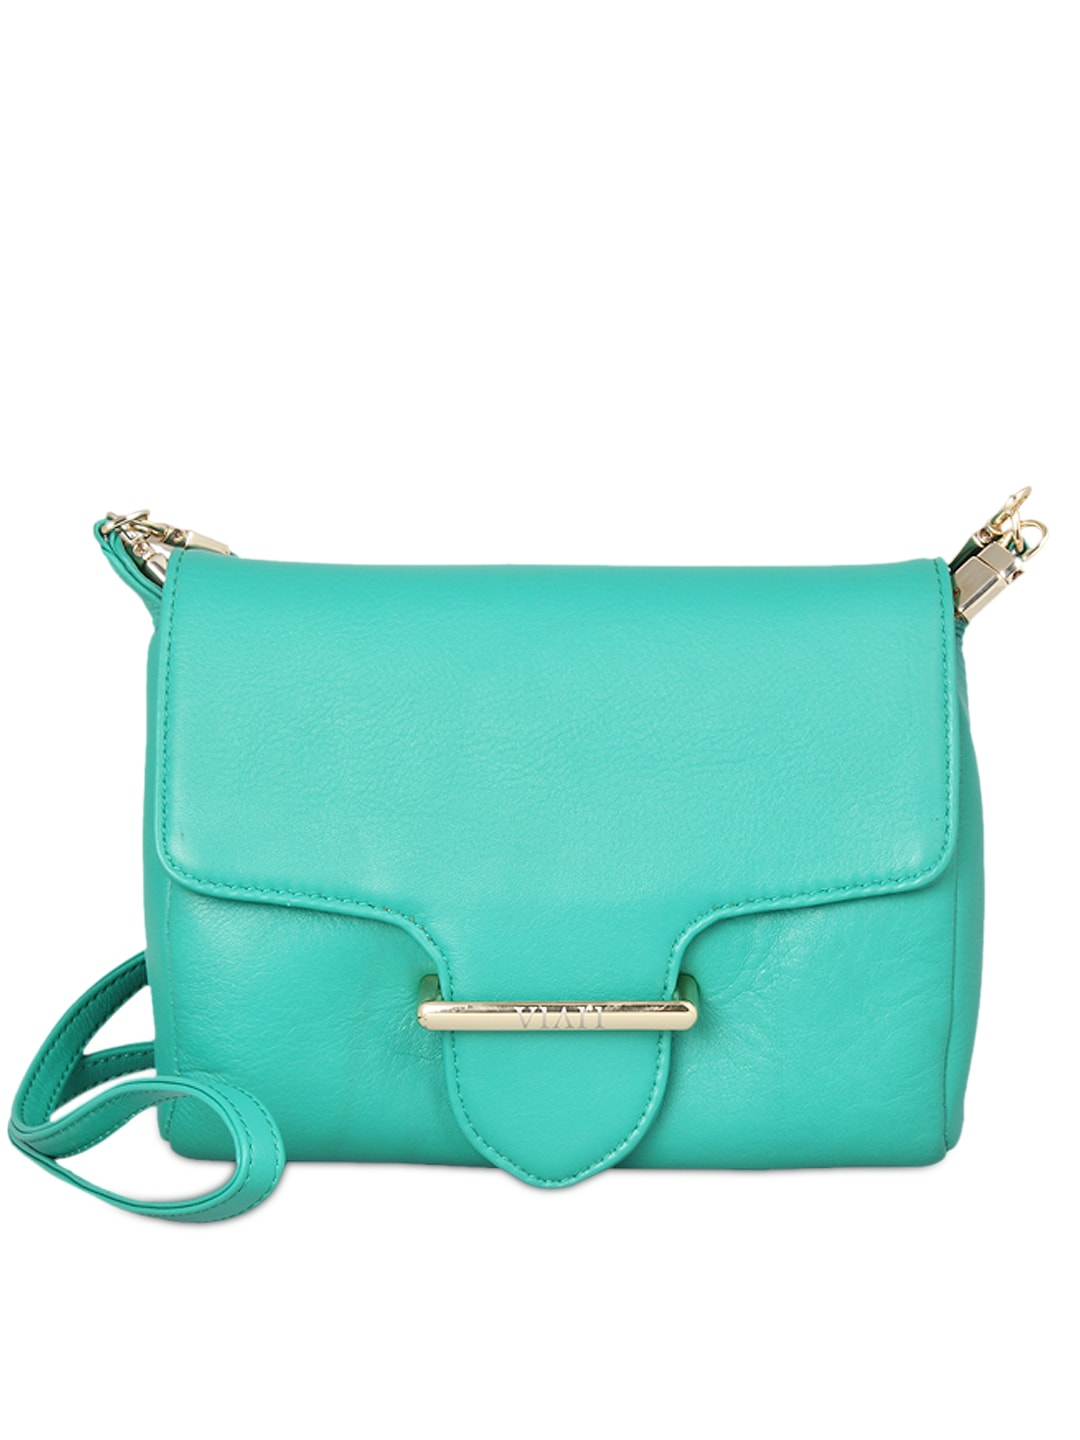 VIARI Sea Green CANNES Leather Sling Bag